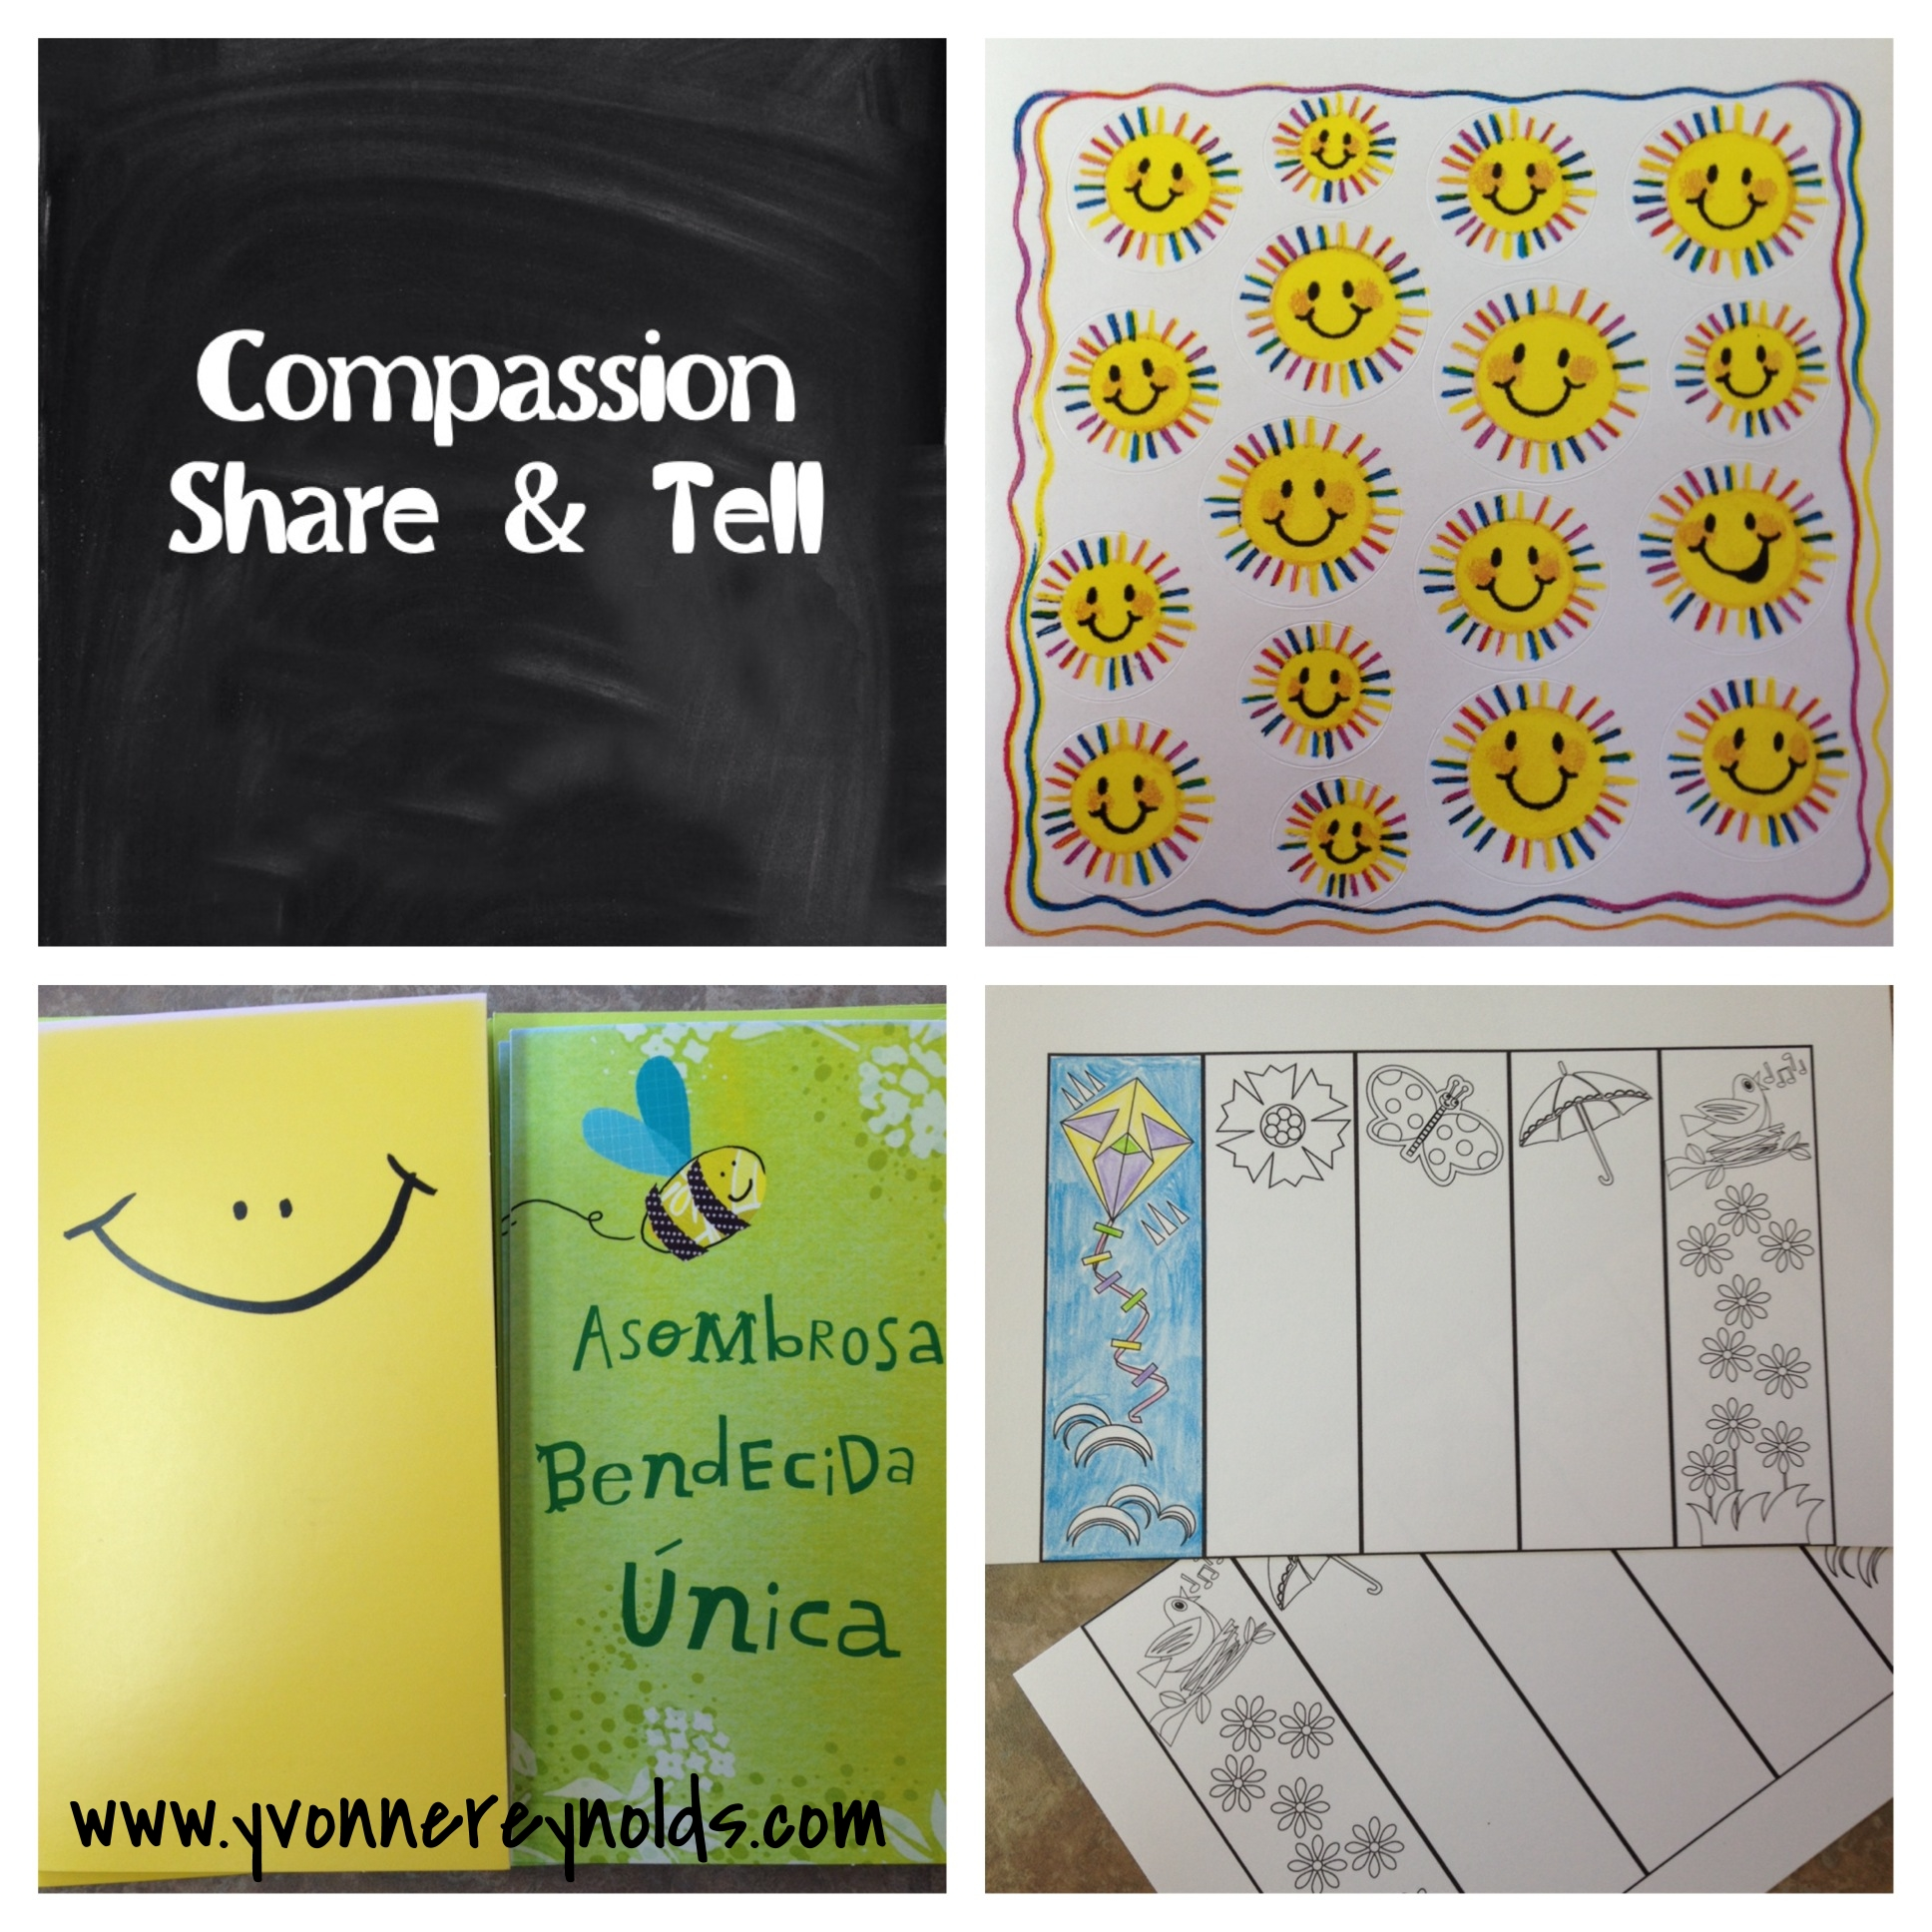 Here is what I am sending to my Compassion kids this month